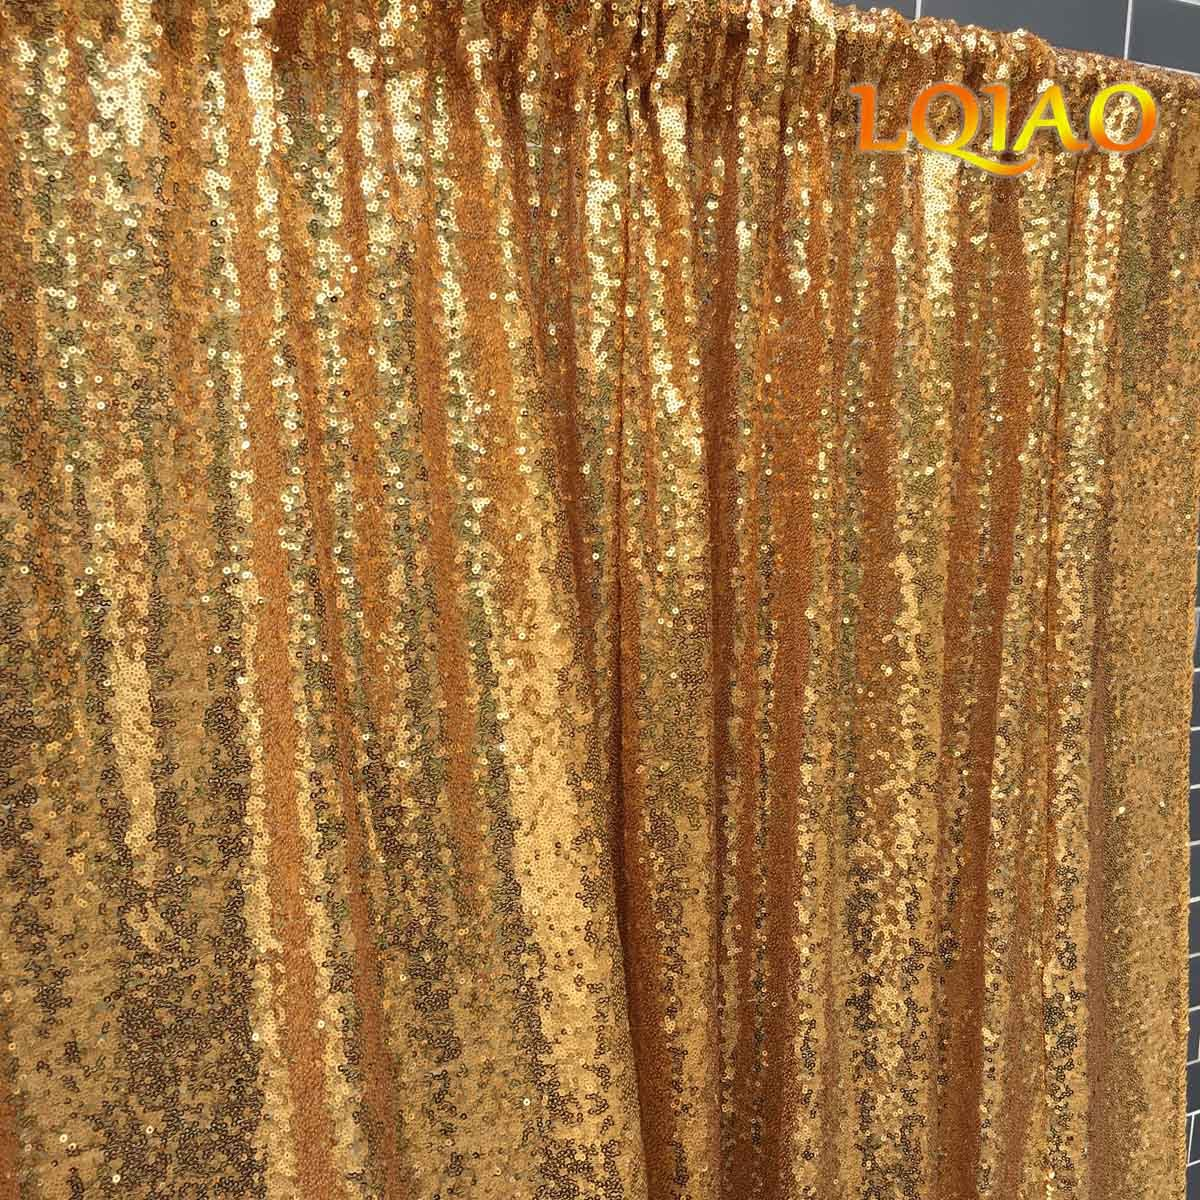 LQIAO Wedding Christmas Backdrop Glitter Gold 20FTx10FT Sequin Backdrop Window Curtain Photo Booth Photography Party Decoration by LQIAO